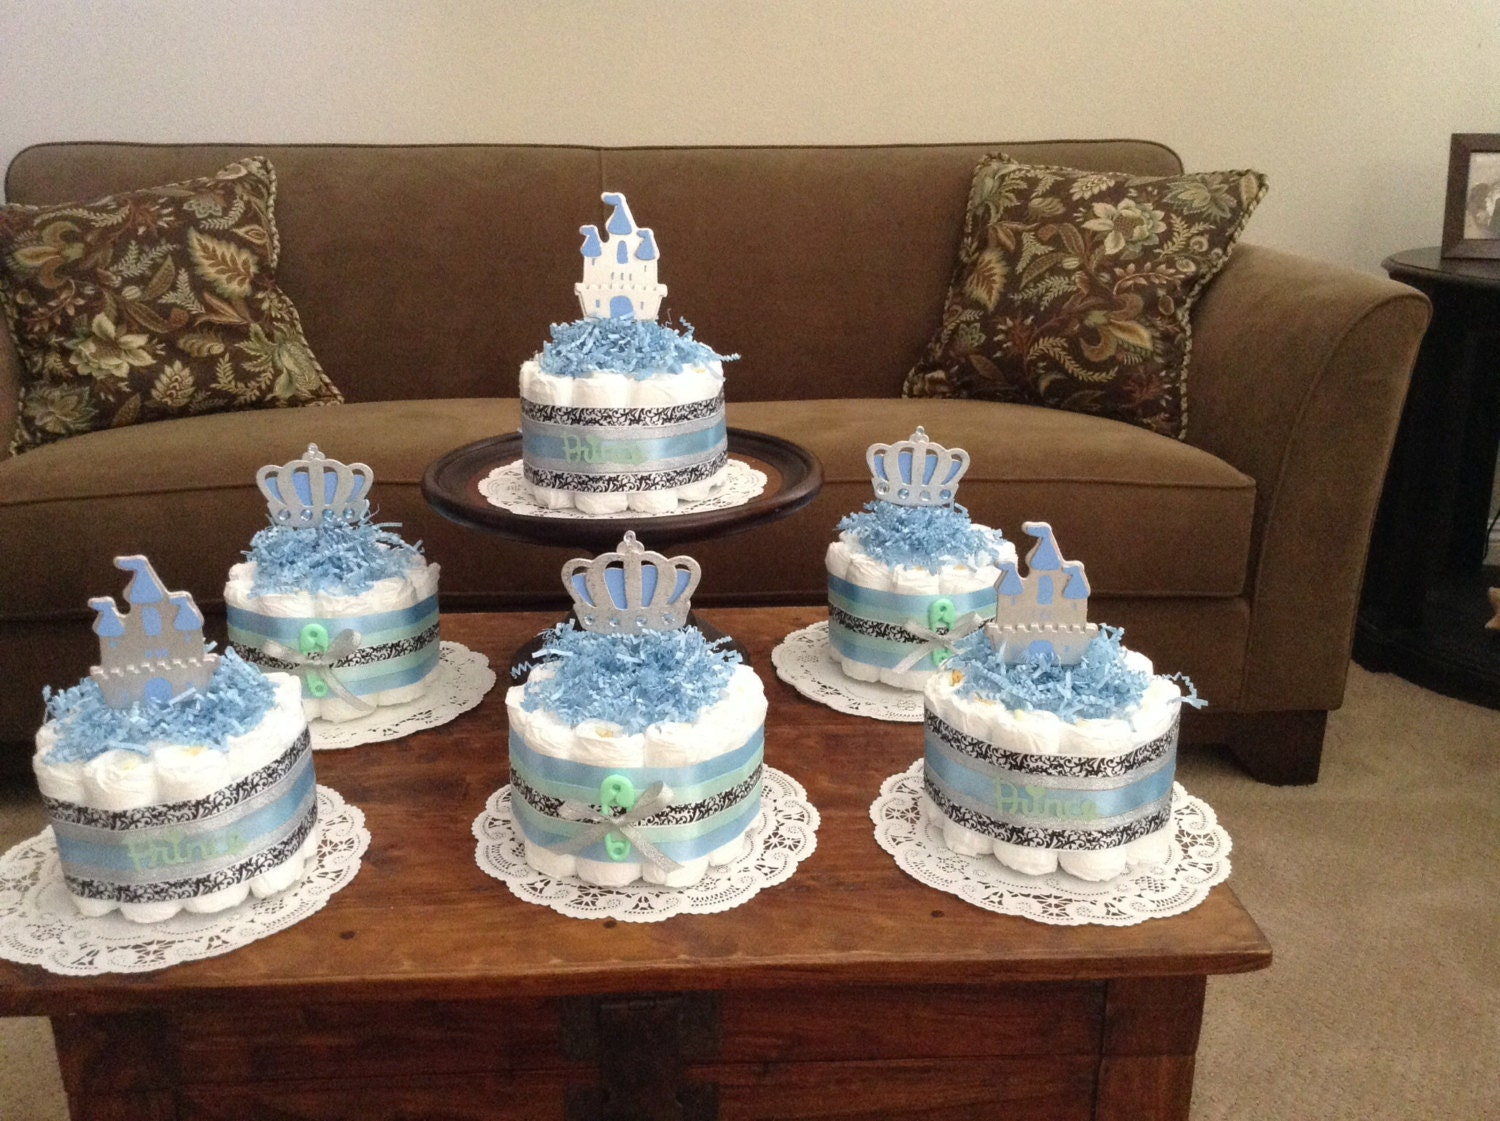 Cake Centerpieces For Baby Shower : Little Prince Baby Shower Diaper Cakes Centerpieces other